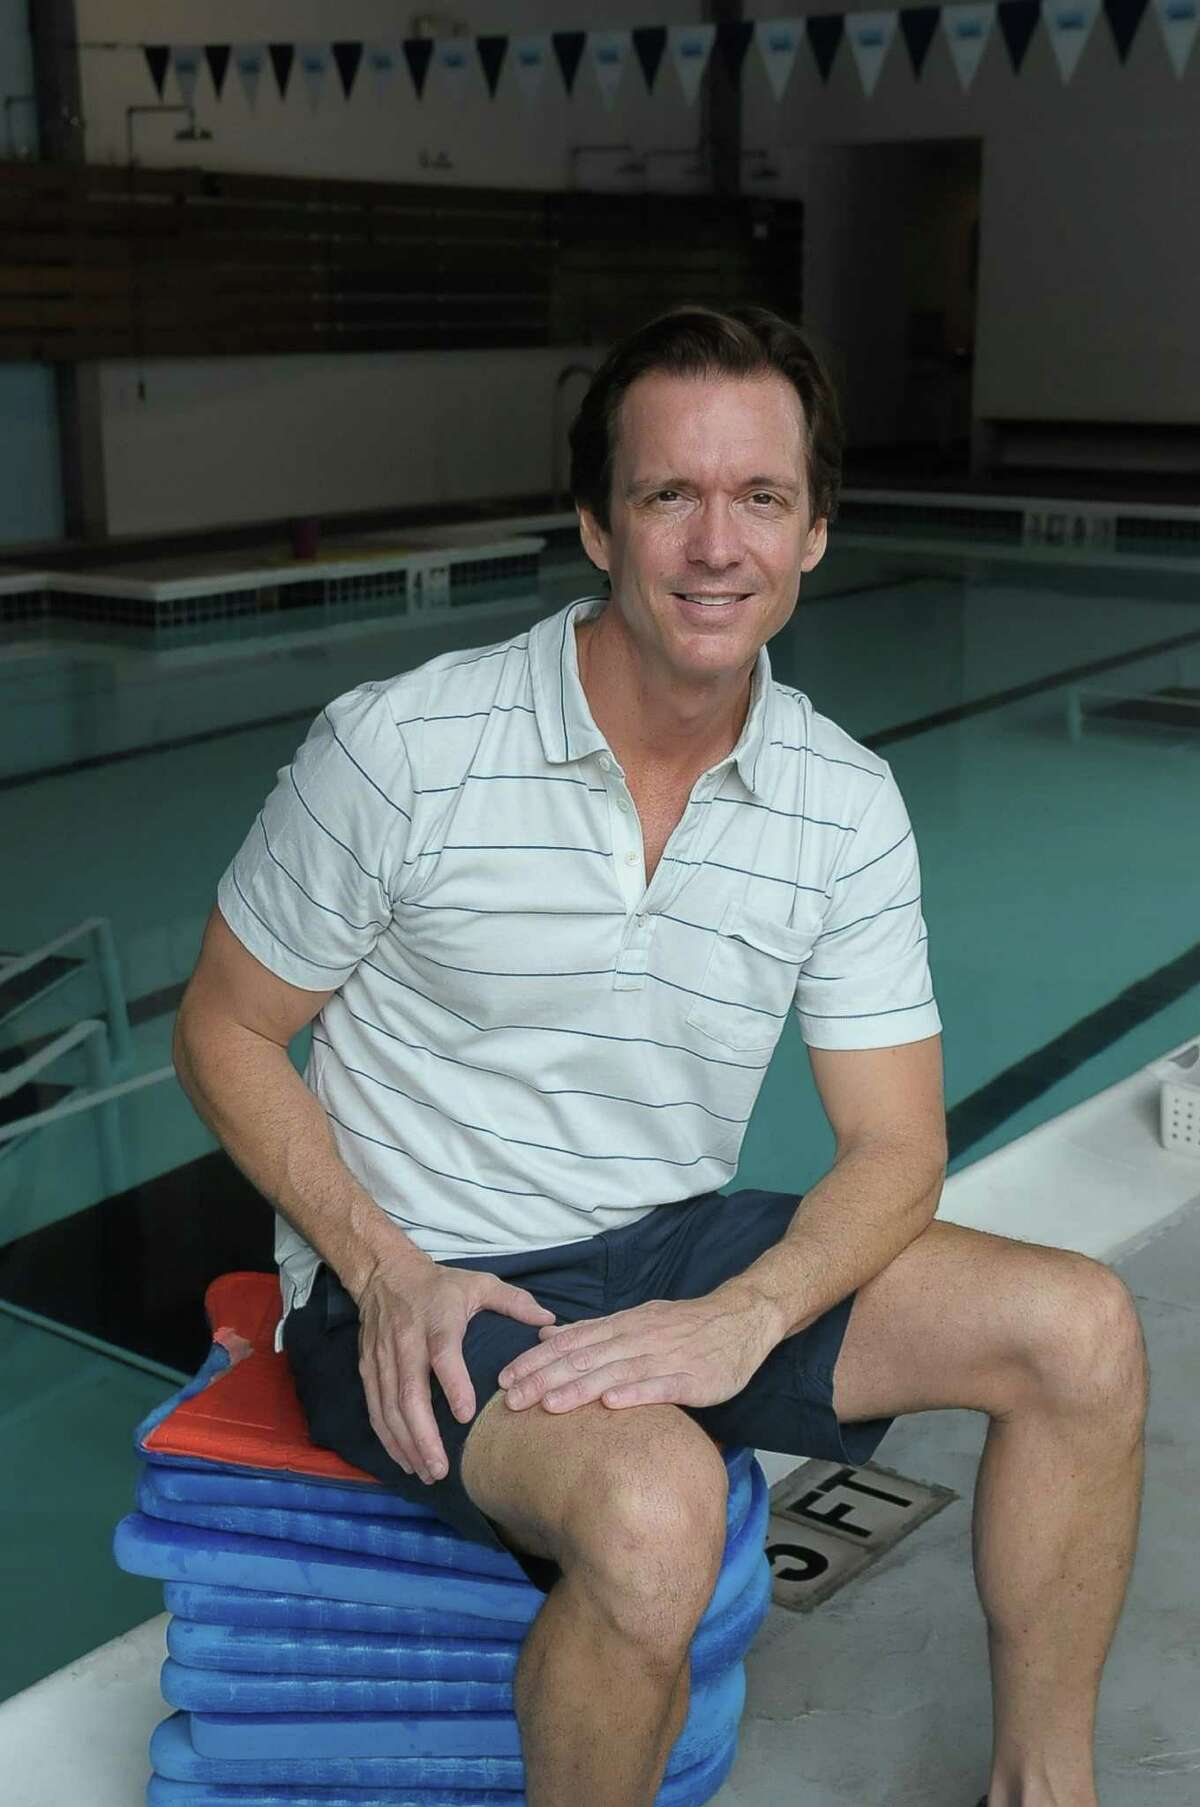 Chad Neal is celebrating the Saint Street Swim's 20th year in business.